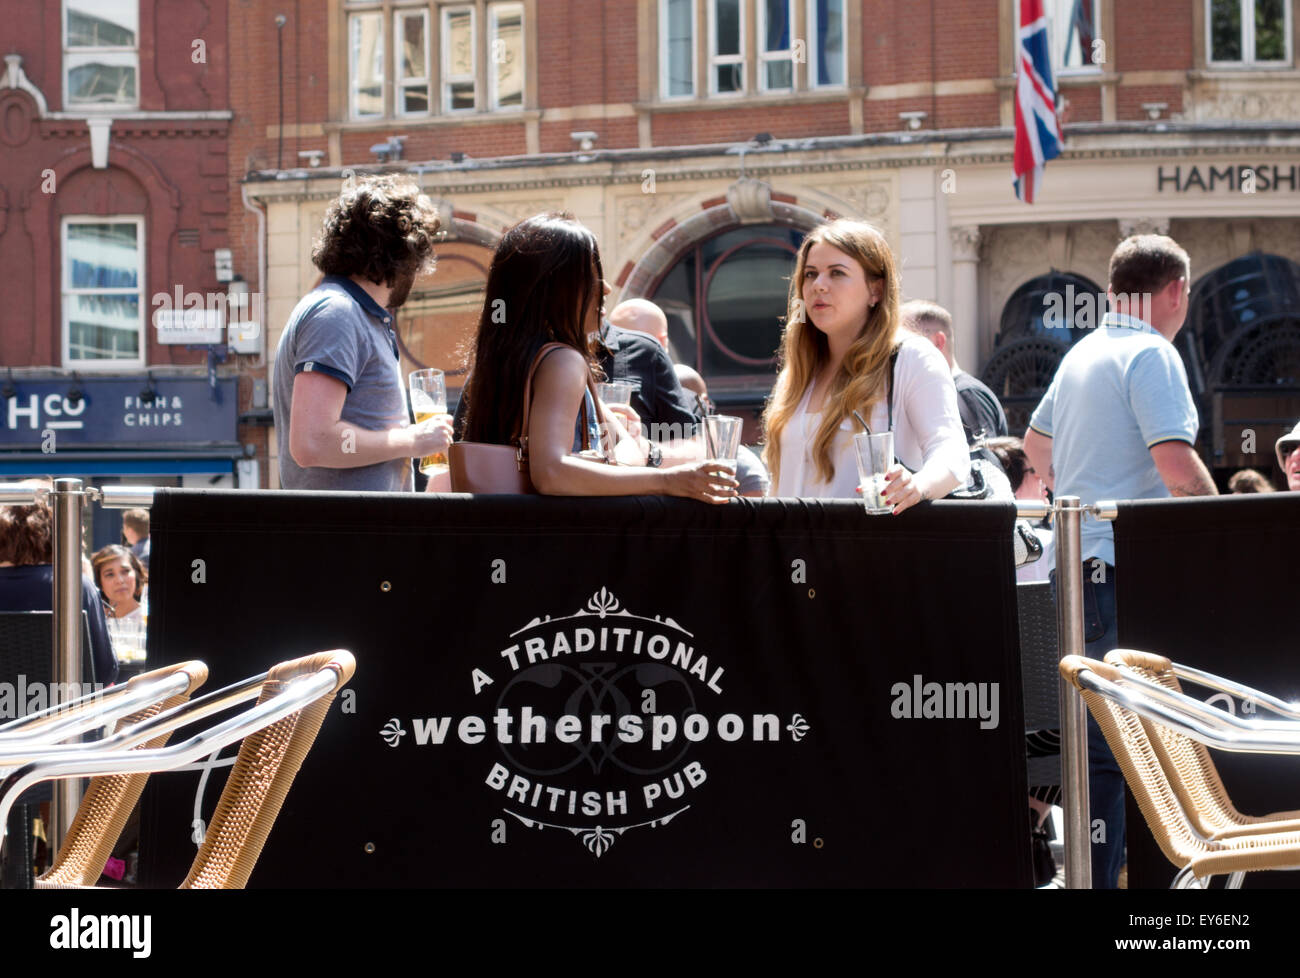 People drinking at the Moon Under Water, a Wetherspoons Pub, Leicester Square, London, UK - Stock Image